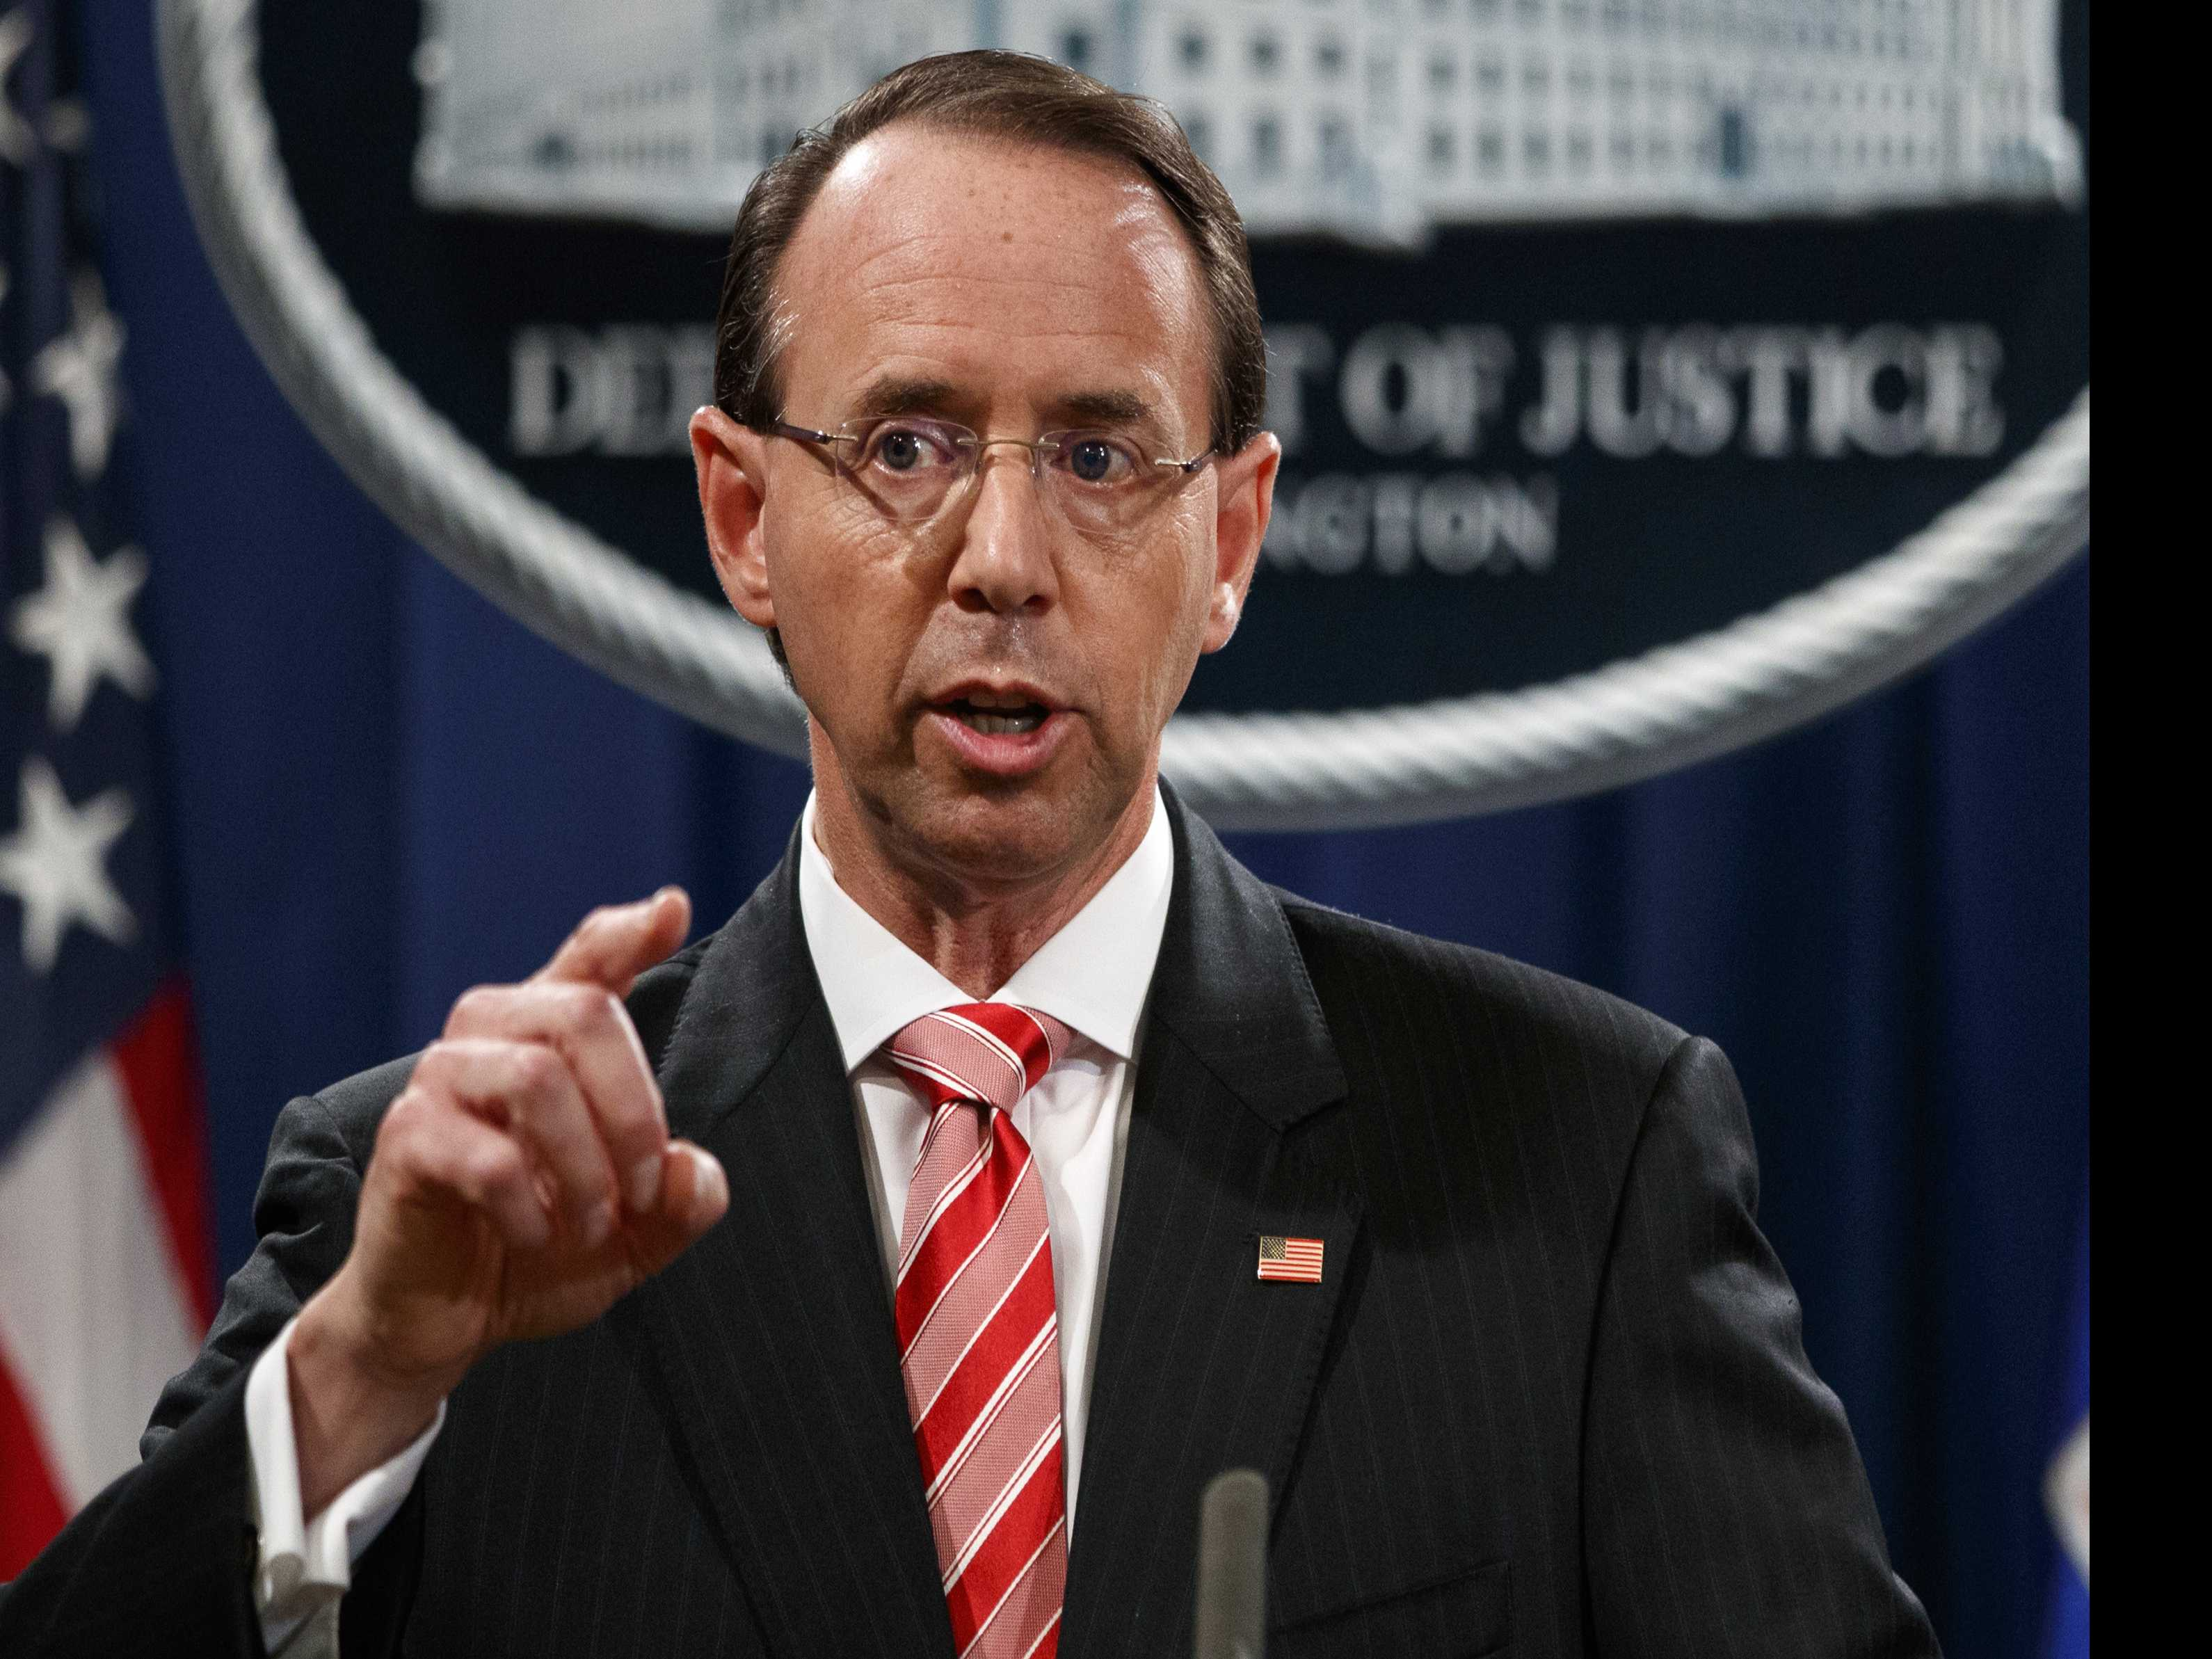 Rosenstein's Fate Could Turn On Which Account Trump Believes